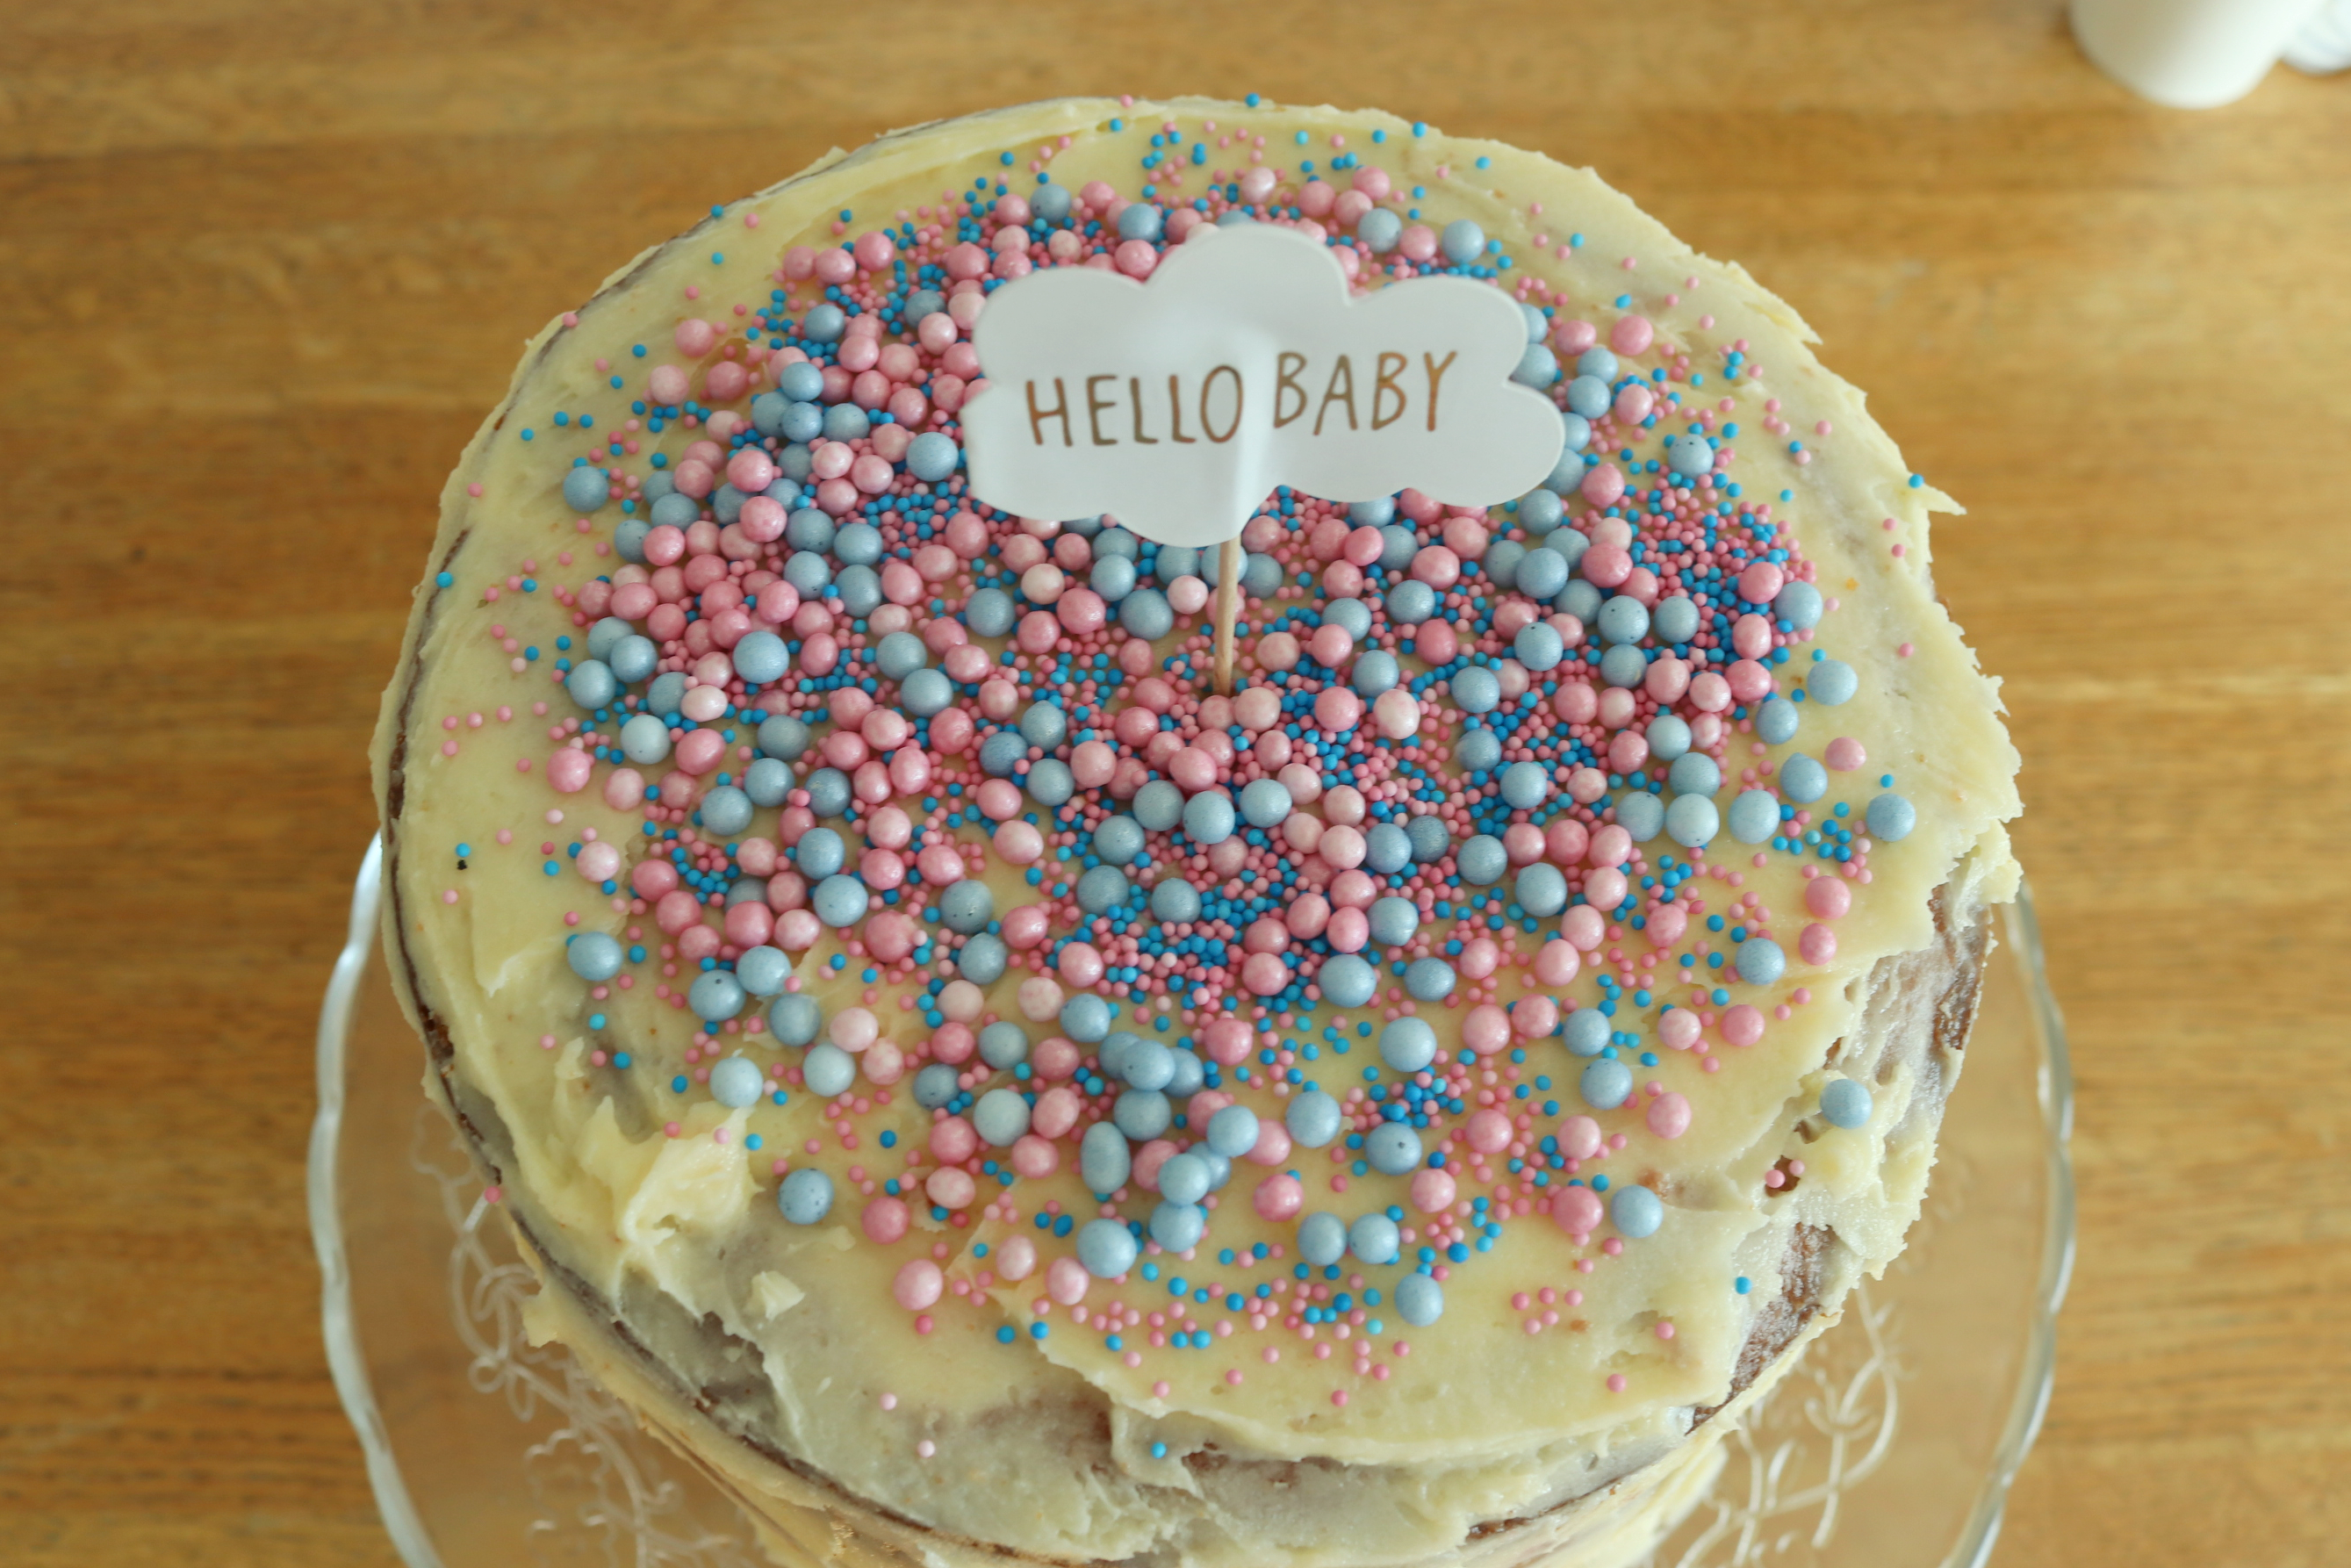 gender reveal, gender reveal party ideeen, gender reveal party, gender reveal taart, gender revealfeest, ideeen gender reveal, gender reveal meisje, gender reveal jongen,